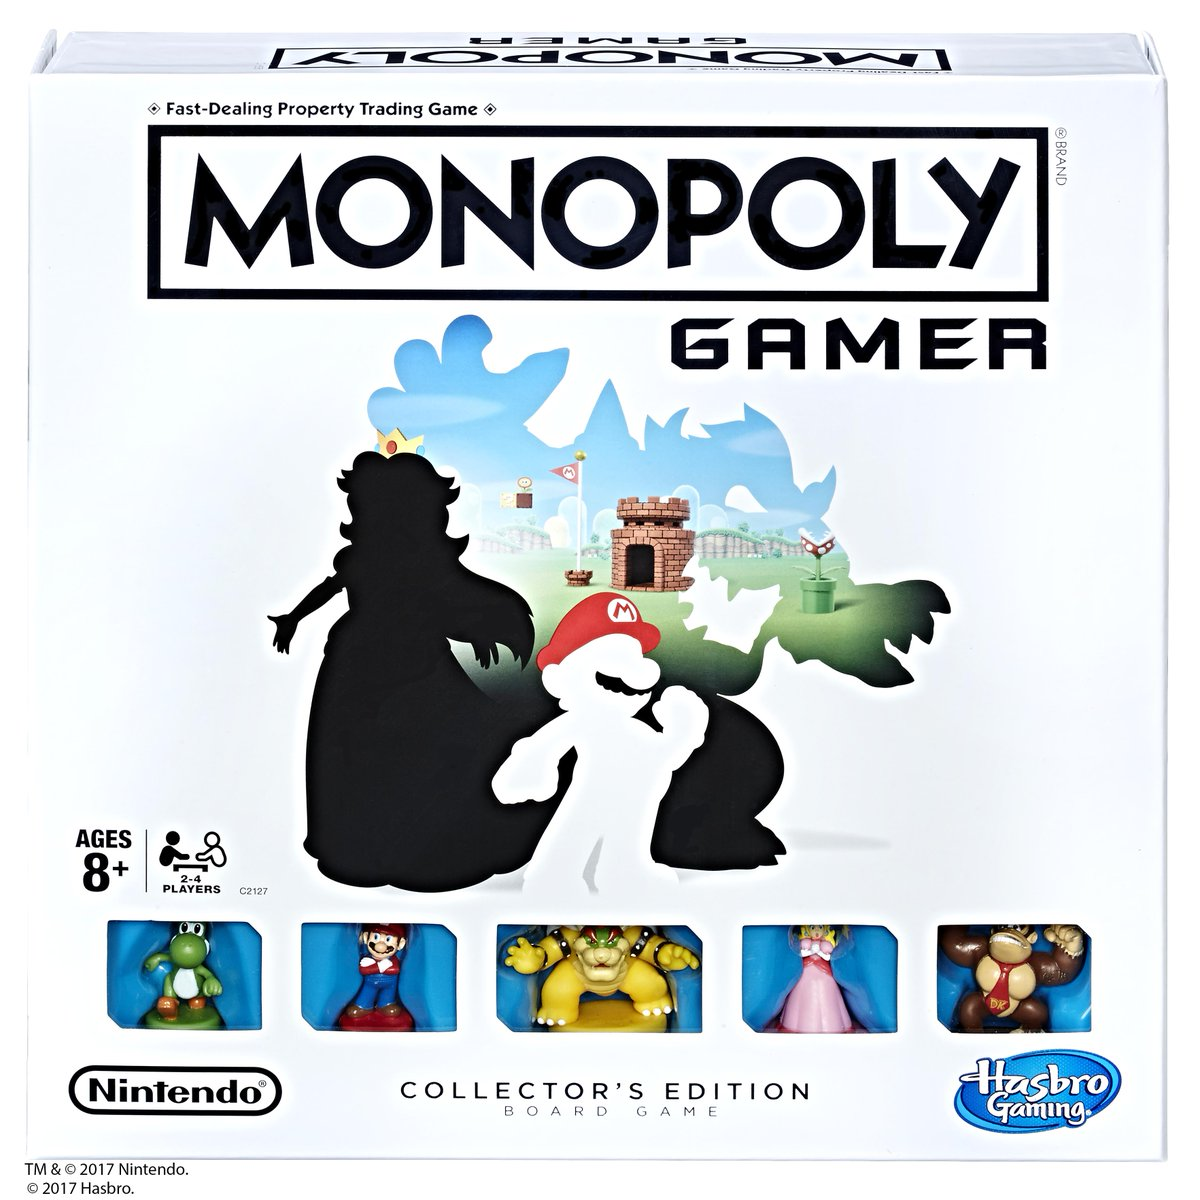 Introducing #MonopolyGamer Collector's Edition! Avail today at US @GameStop stores: https://t.co/nF3TqX4CAz https://t.co/xPHy8eMpMk